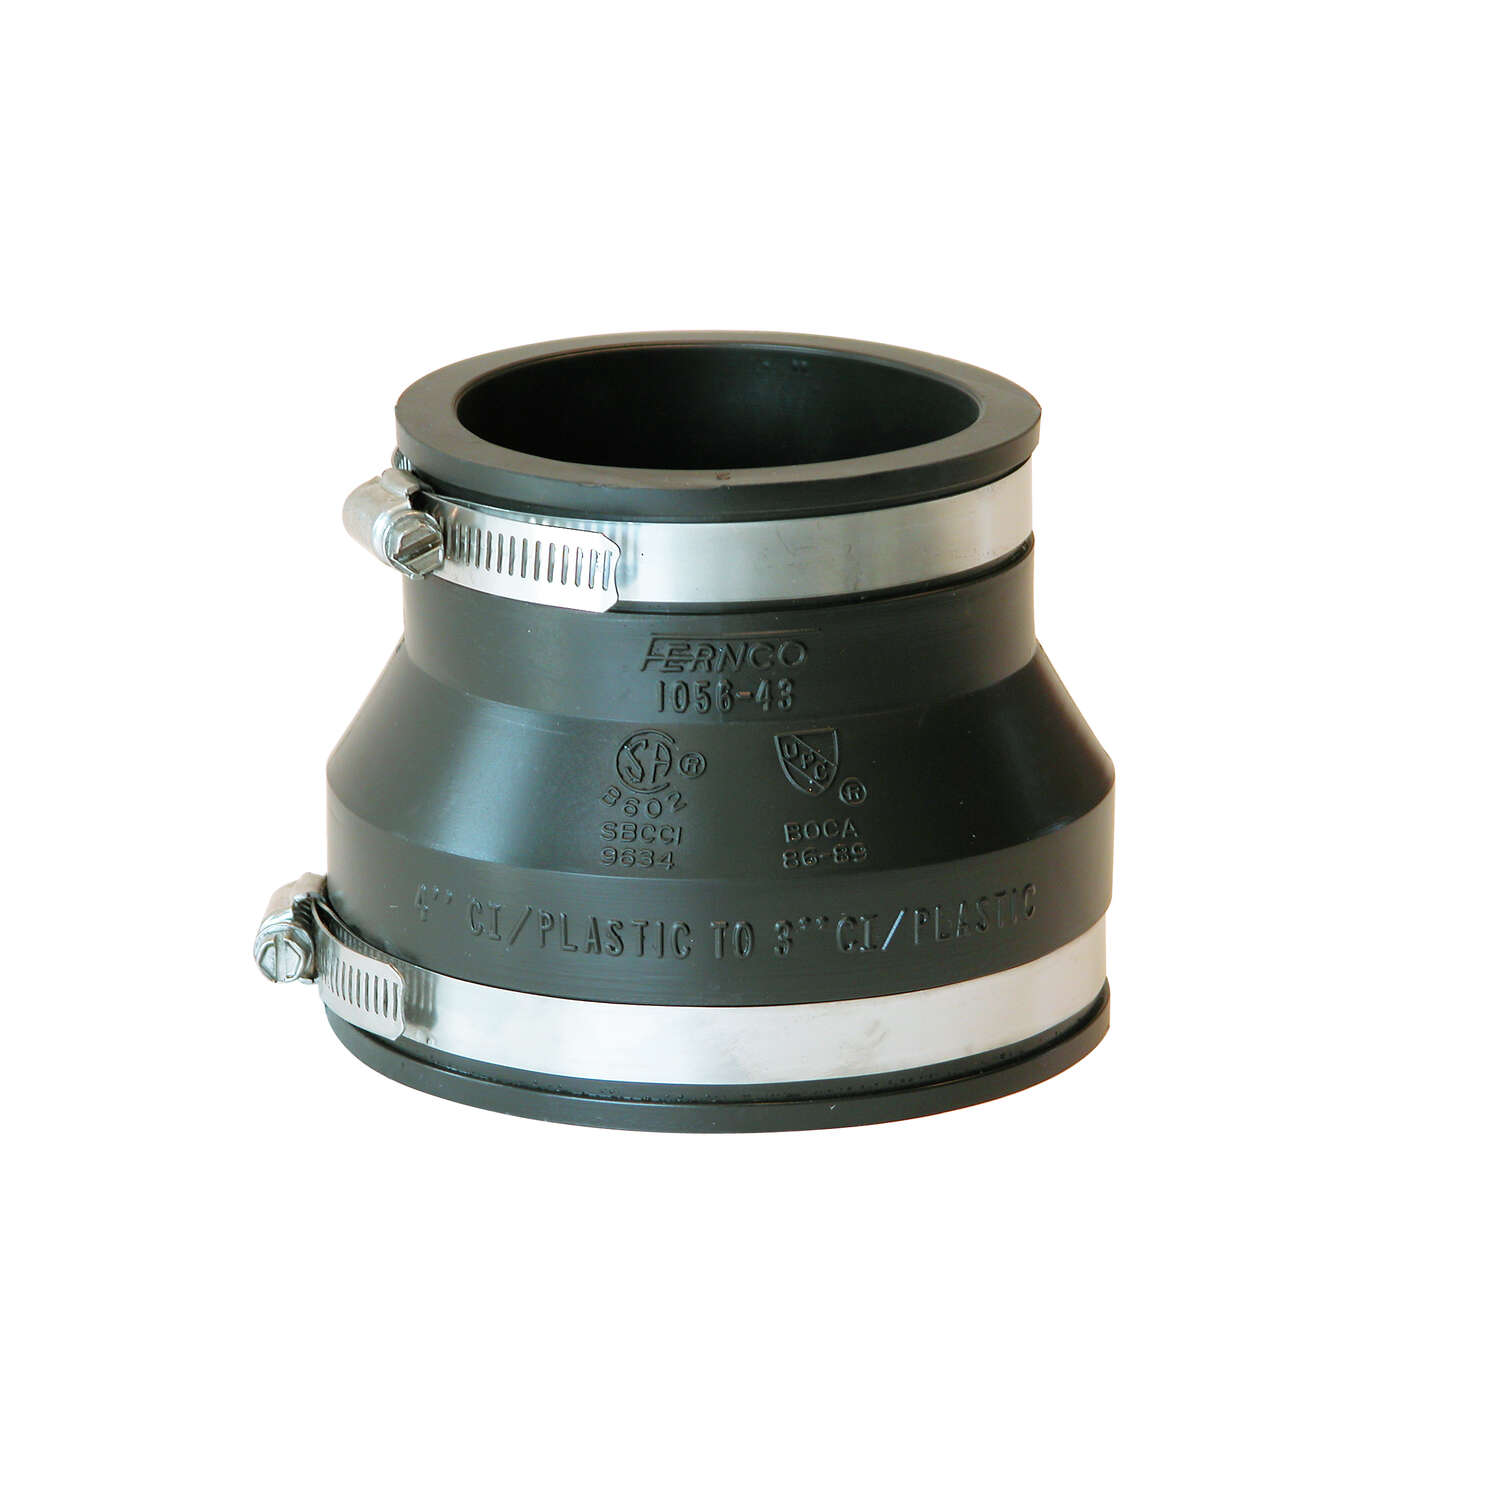 Fernco  Schedule 40  4 in. Hub   x 3 in. Dia. Hub  PVC  Flexible Coupling